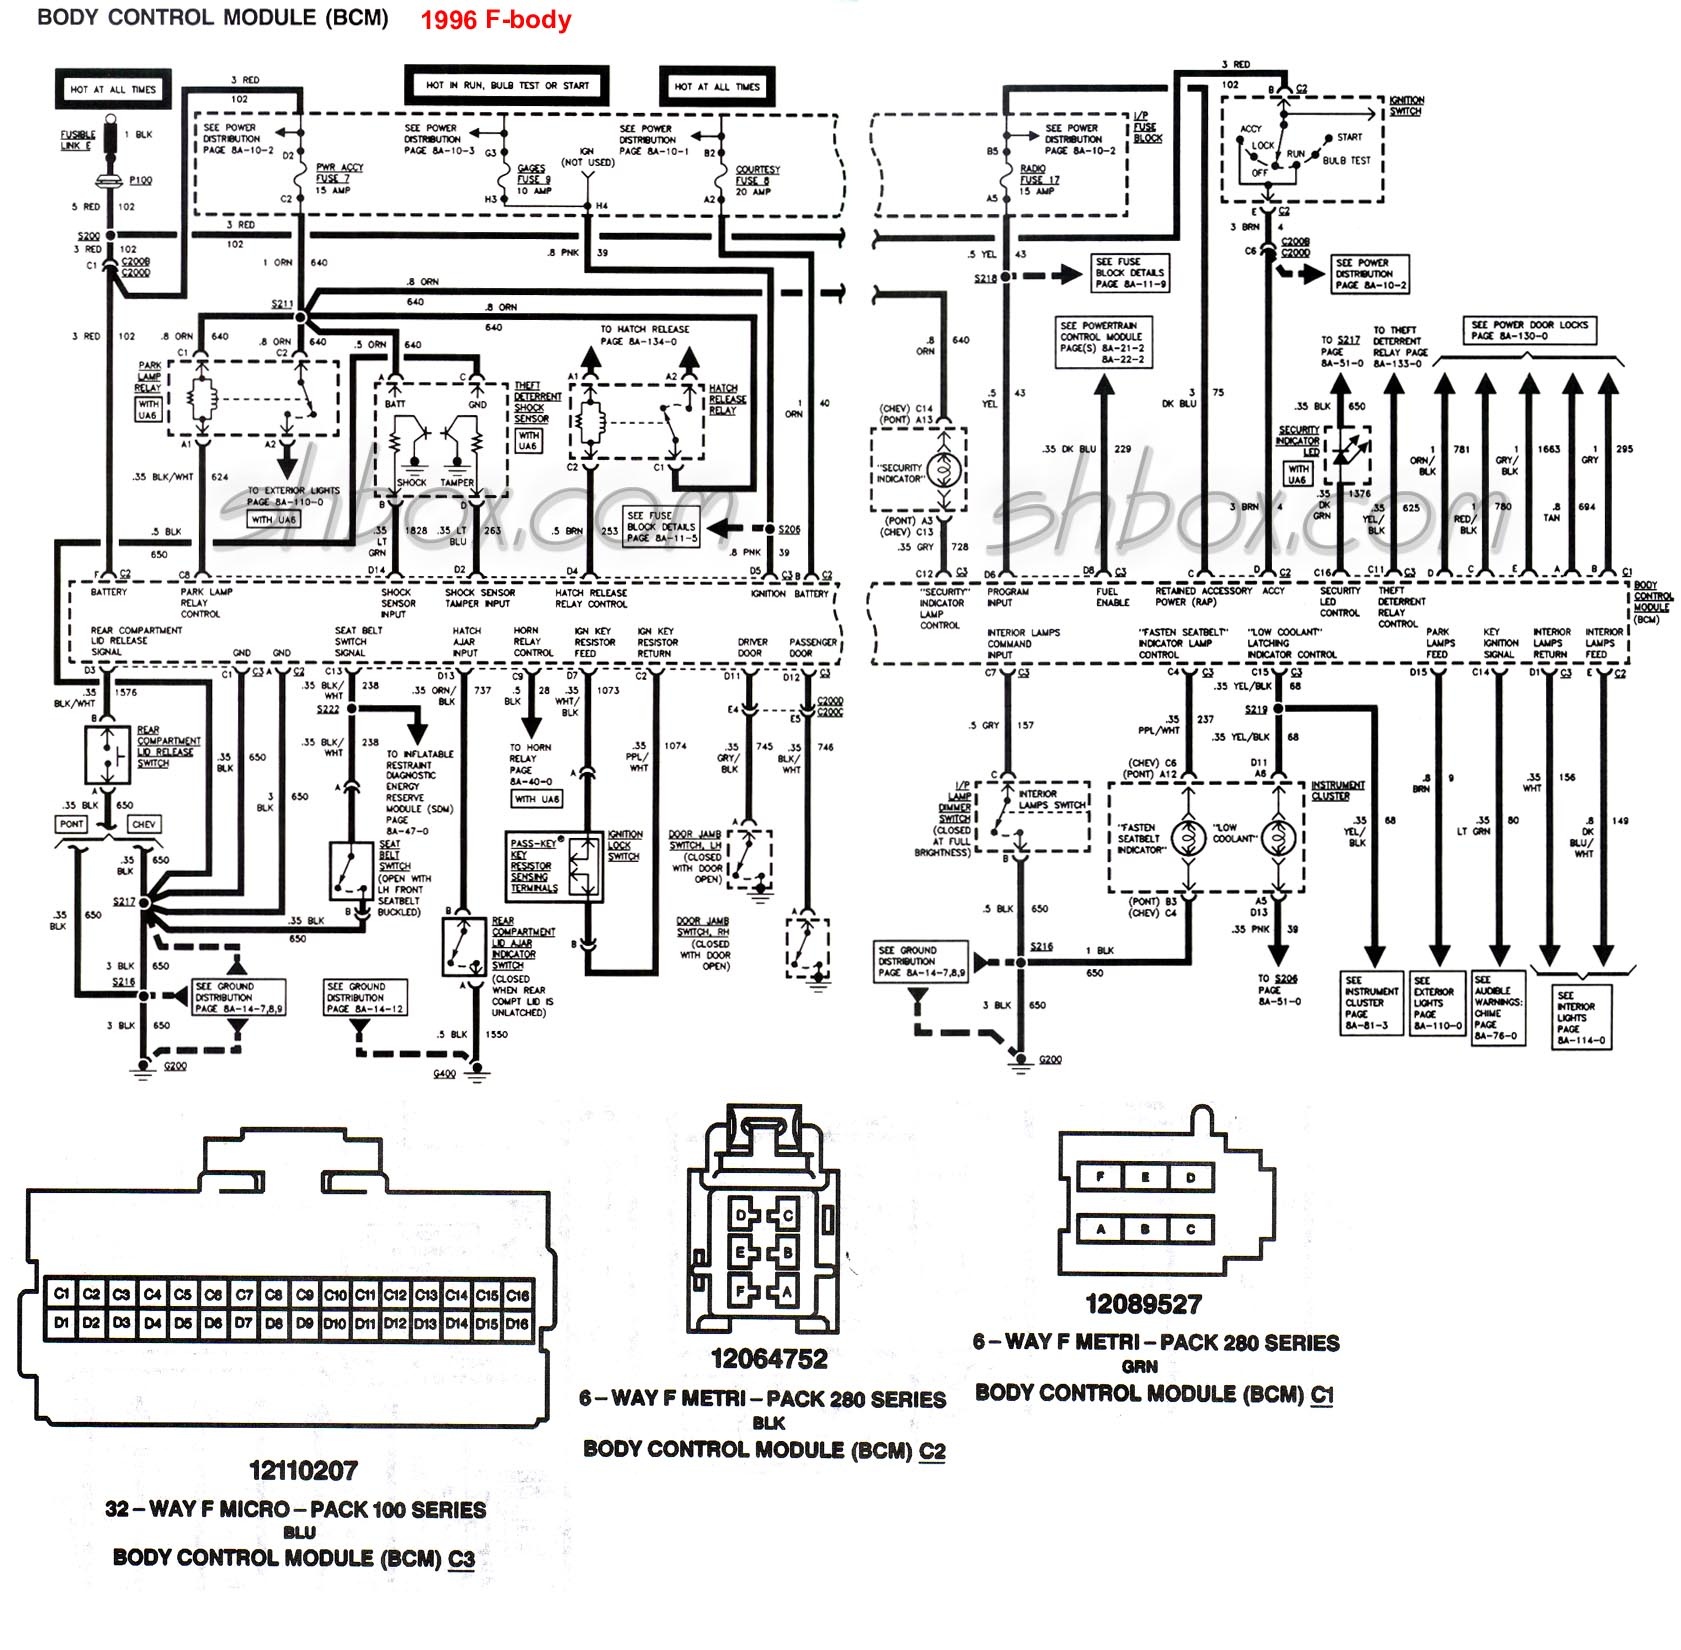 hight resolution of 4th gen lt1 f body tech aids camaro wiring schematic 97 camaro wiring diagram